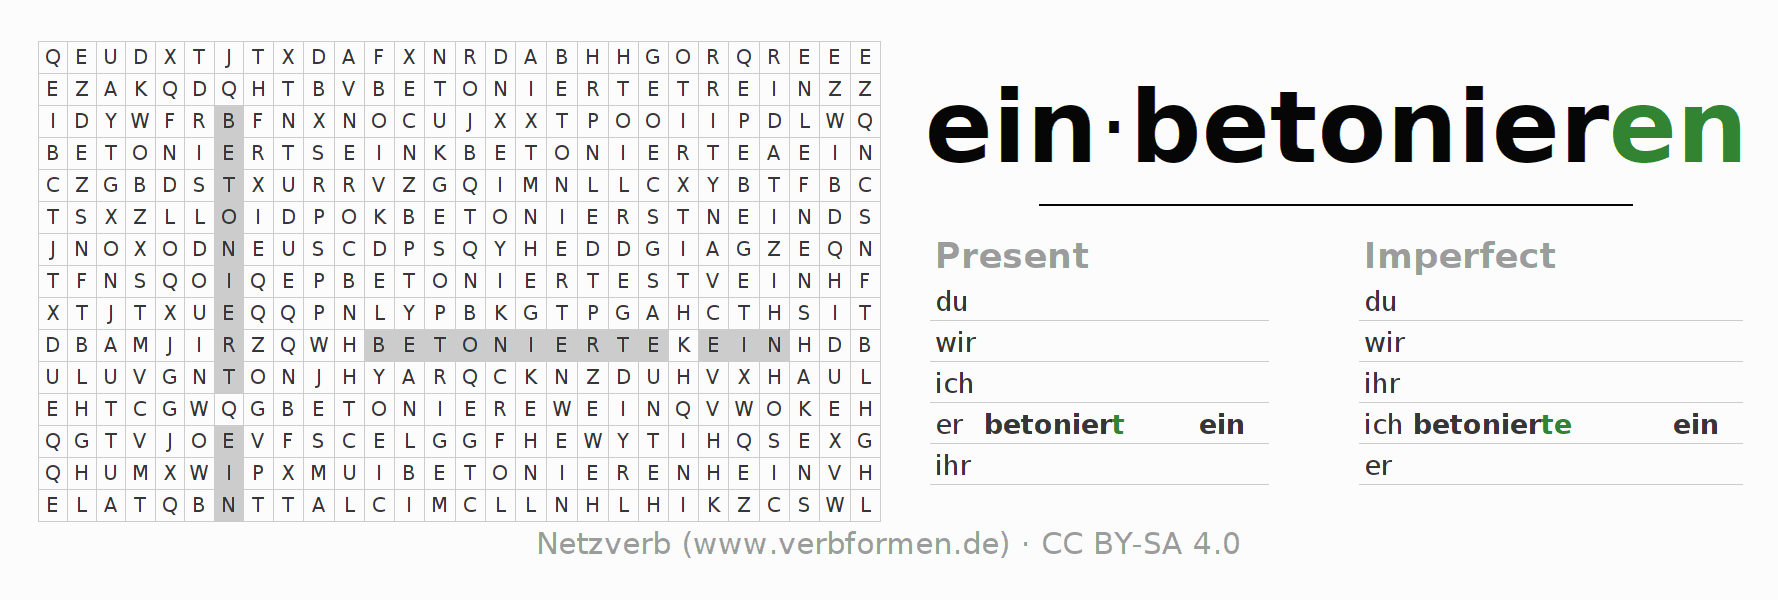 Word search puzzle for the conjugation of the verb einbetonieren